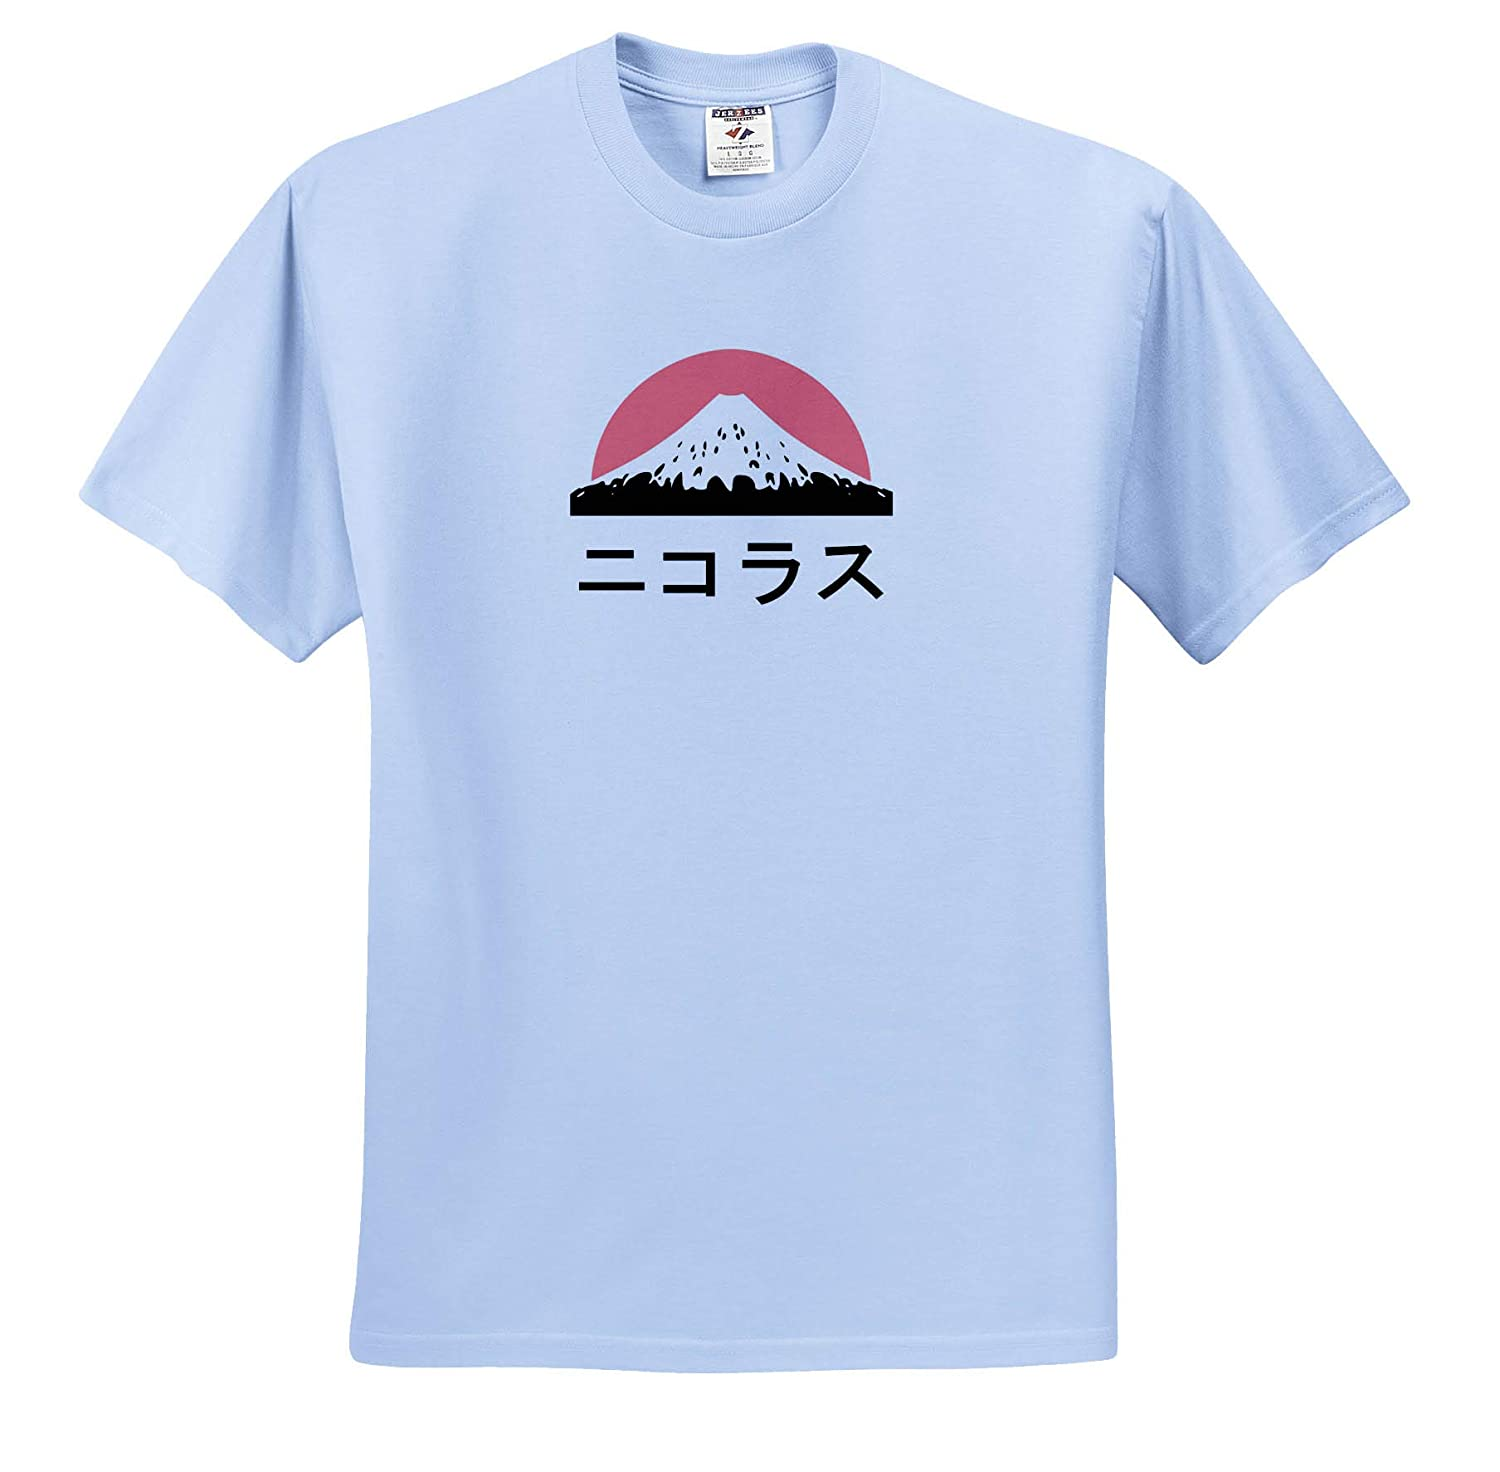 ts/_320593 Name in Japanese Nicholas in Japanese Letters Adult T-Shirt XL 3dRose InspirationzStore